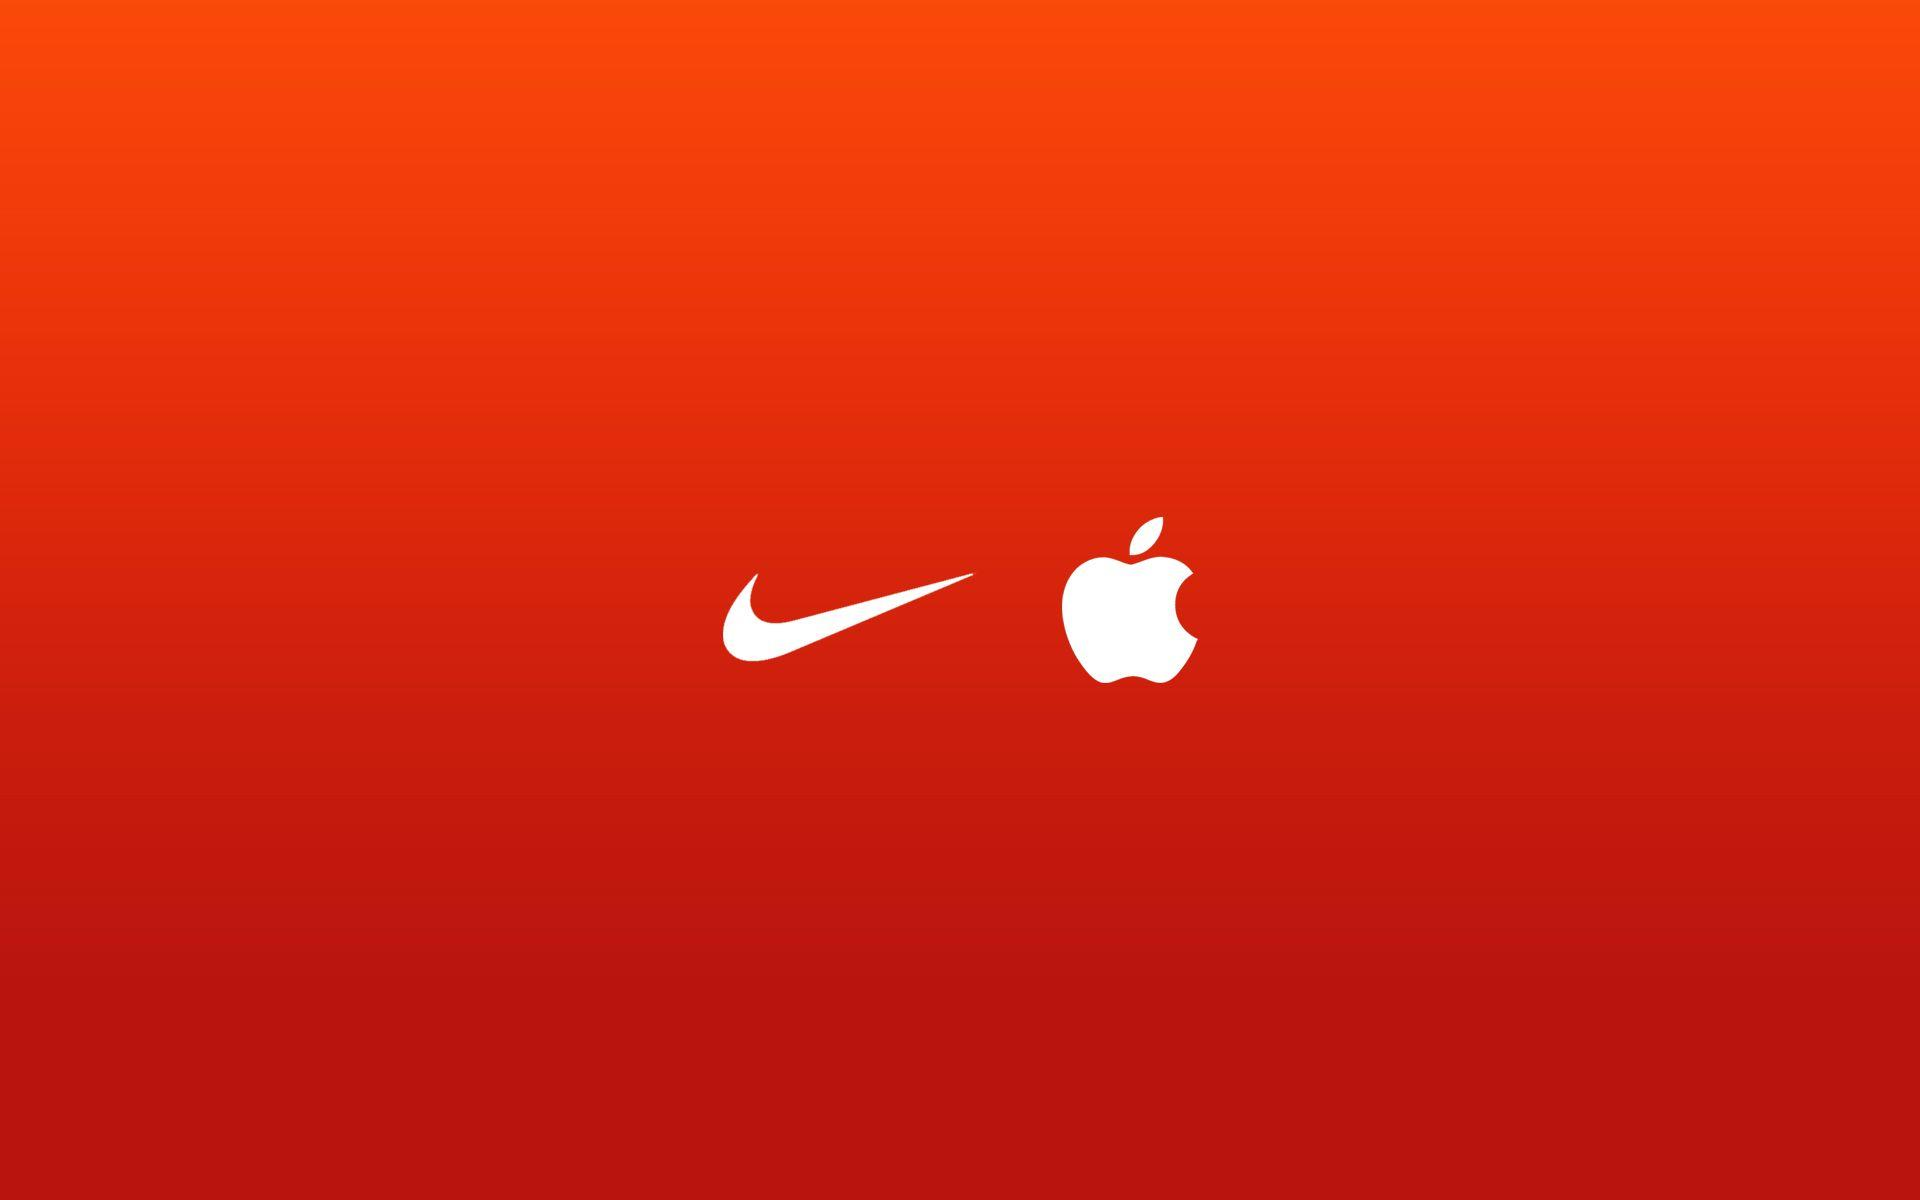 best hd iphone wallpapers red - photo #36